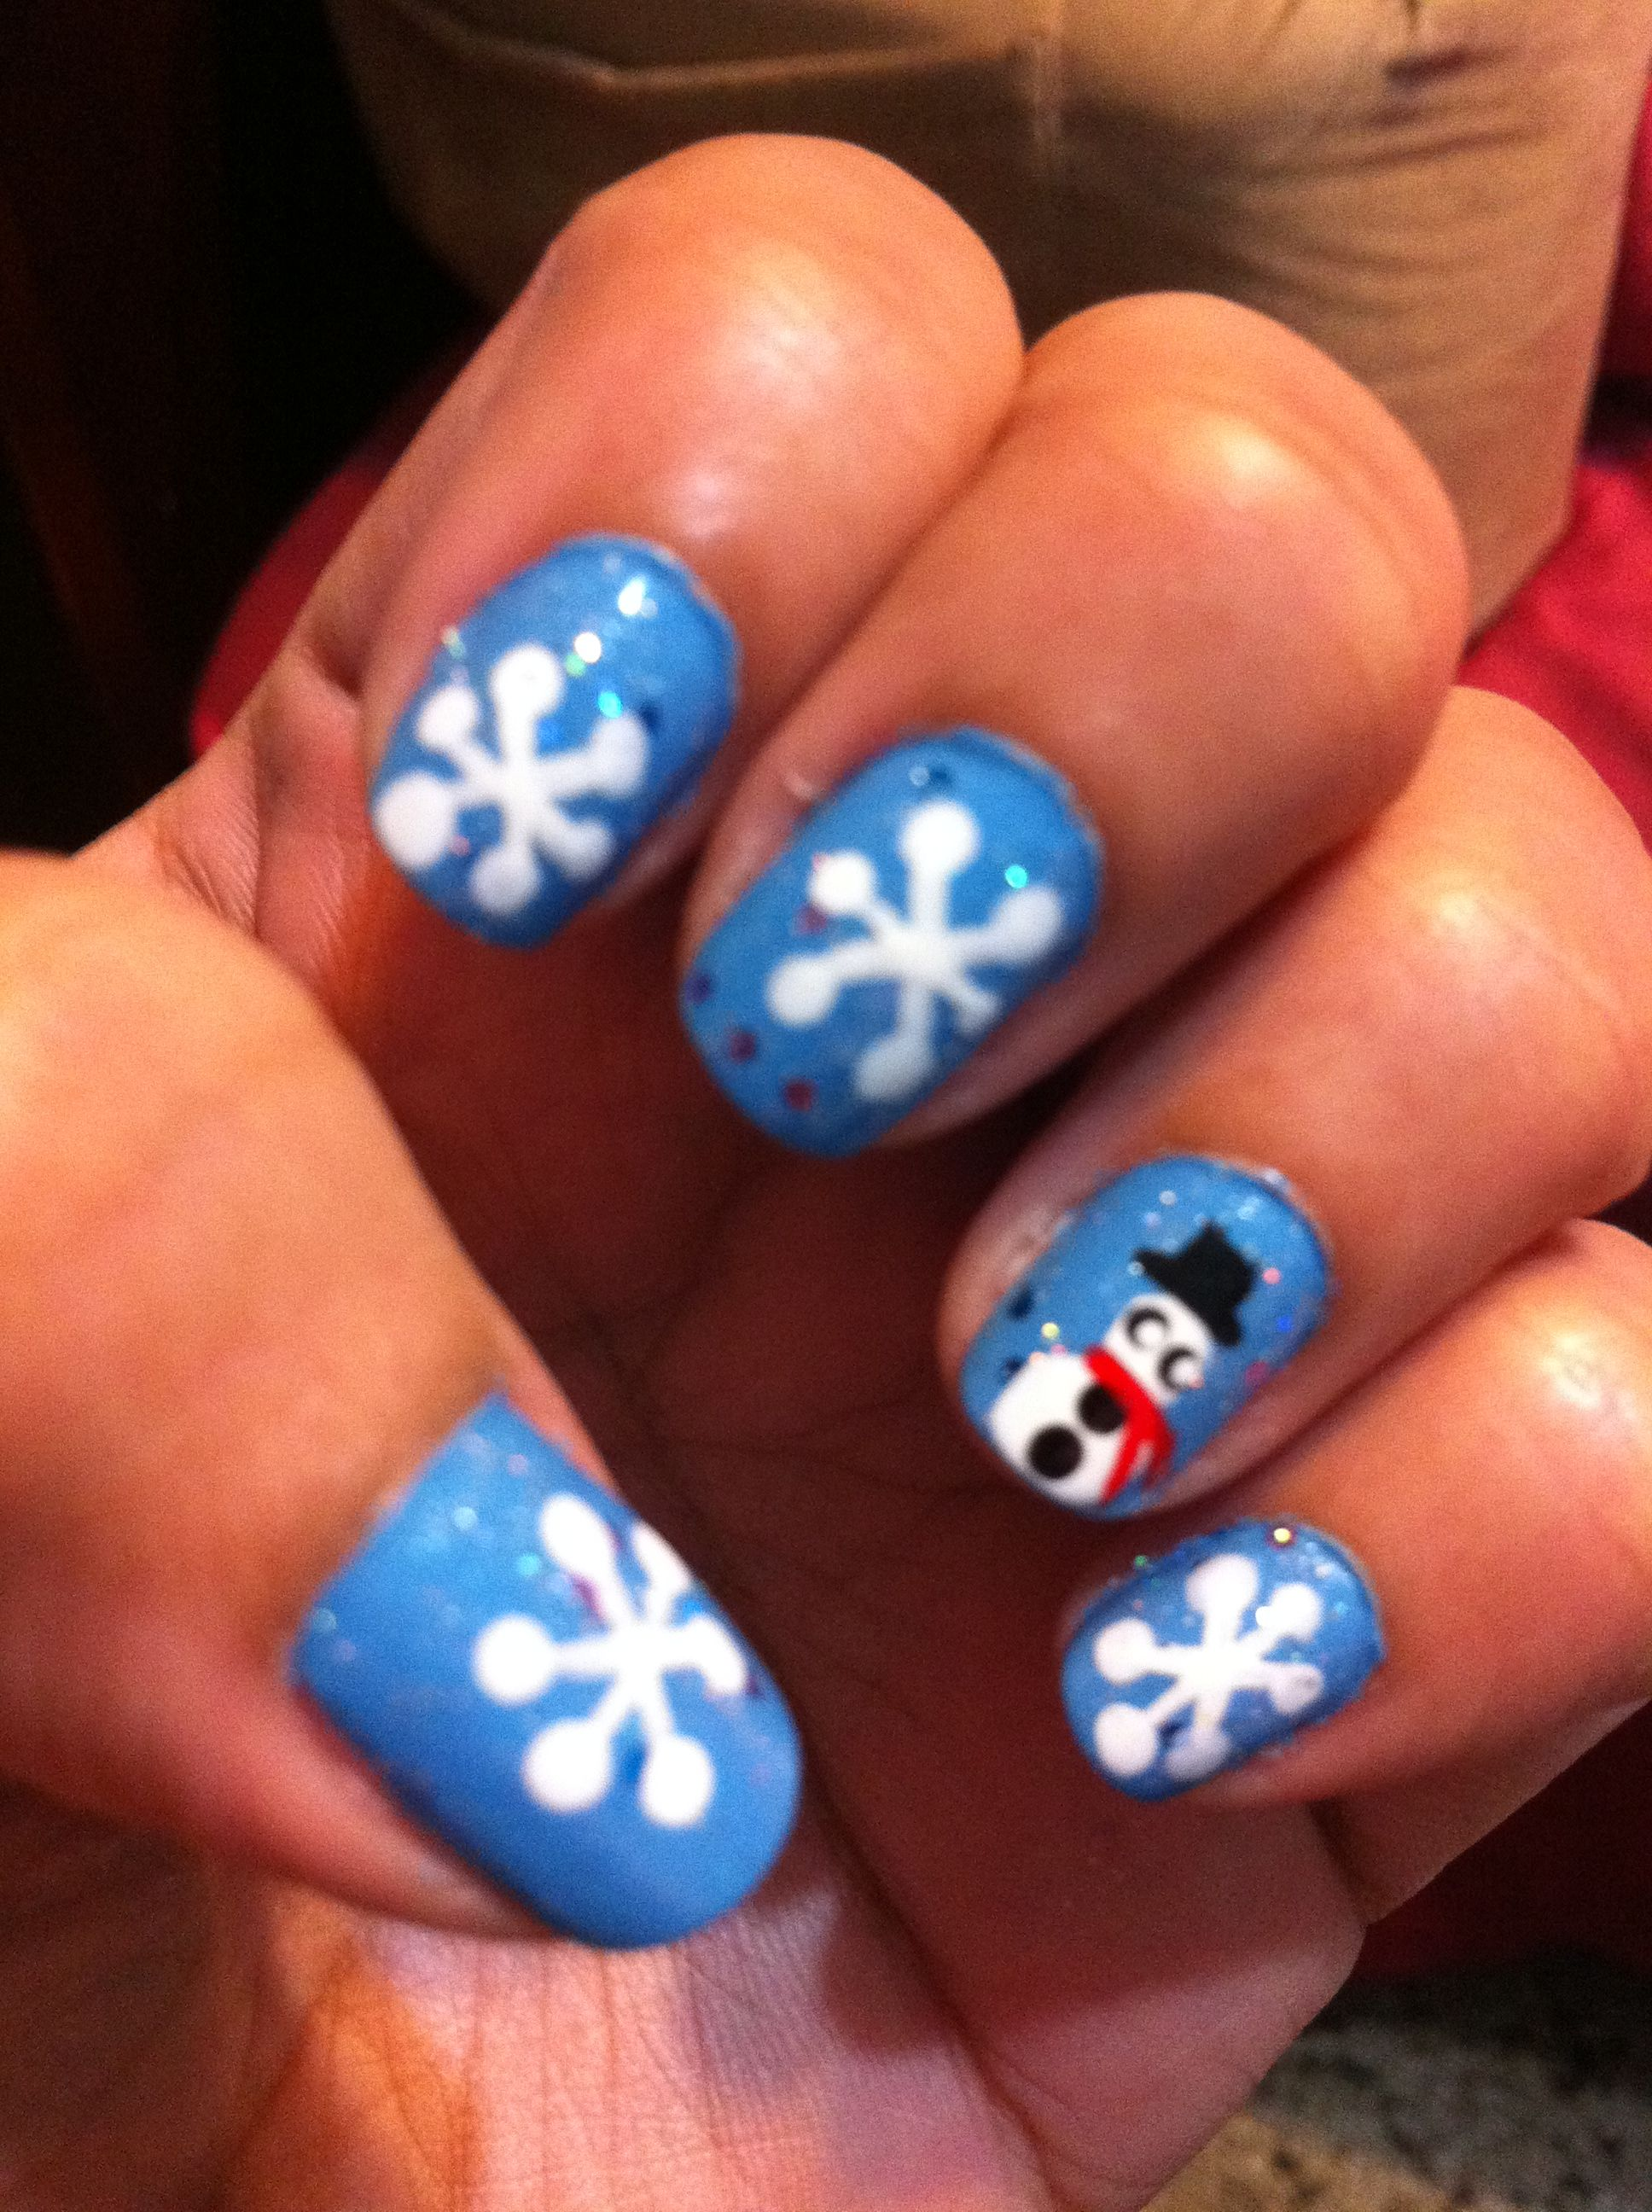 A cute winter snowman themed nail art!